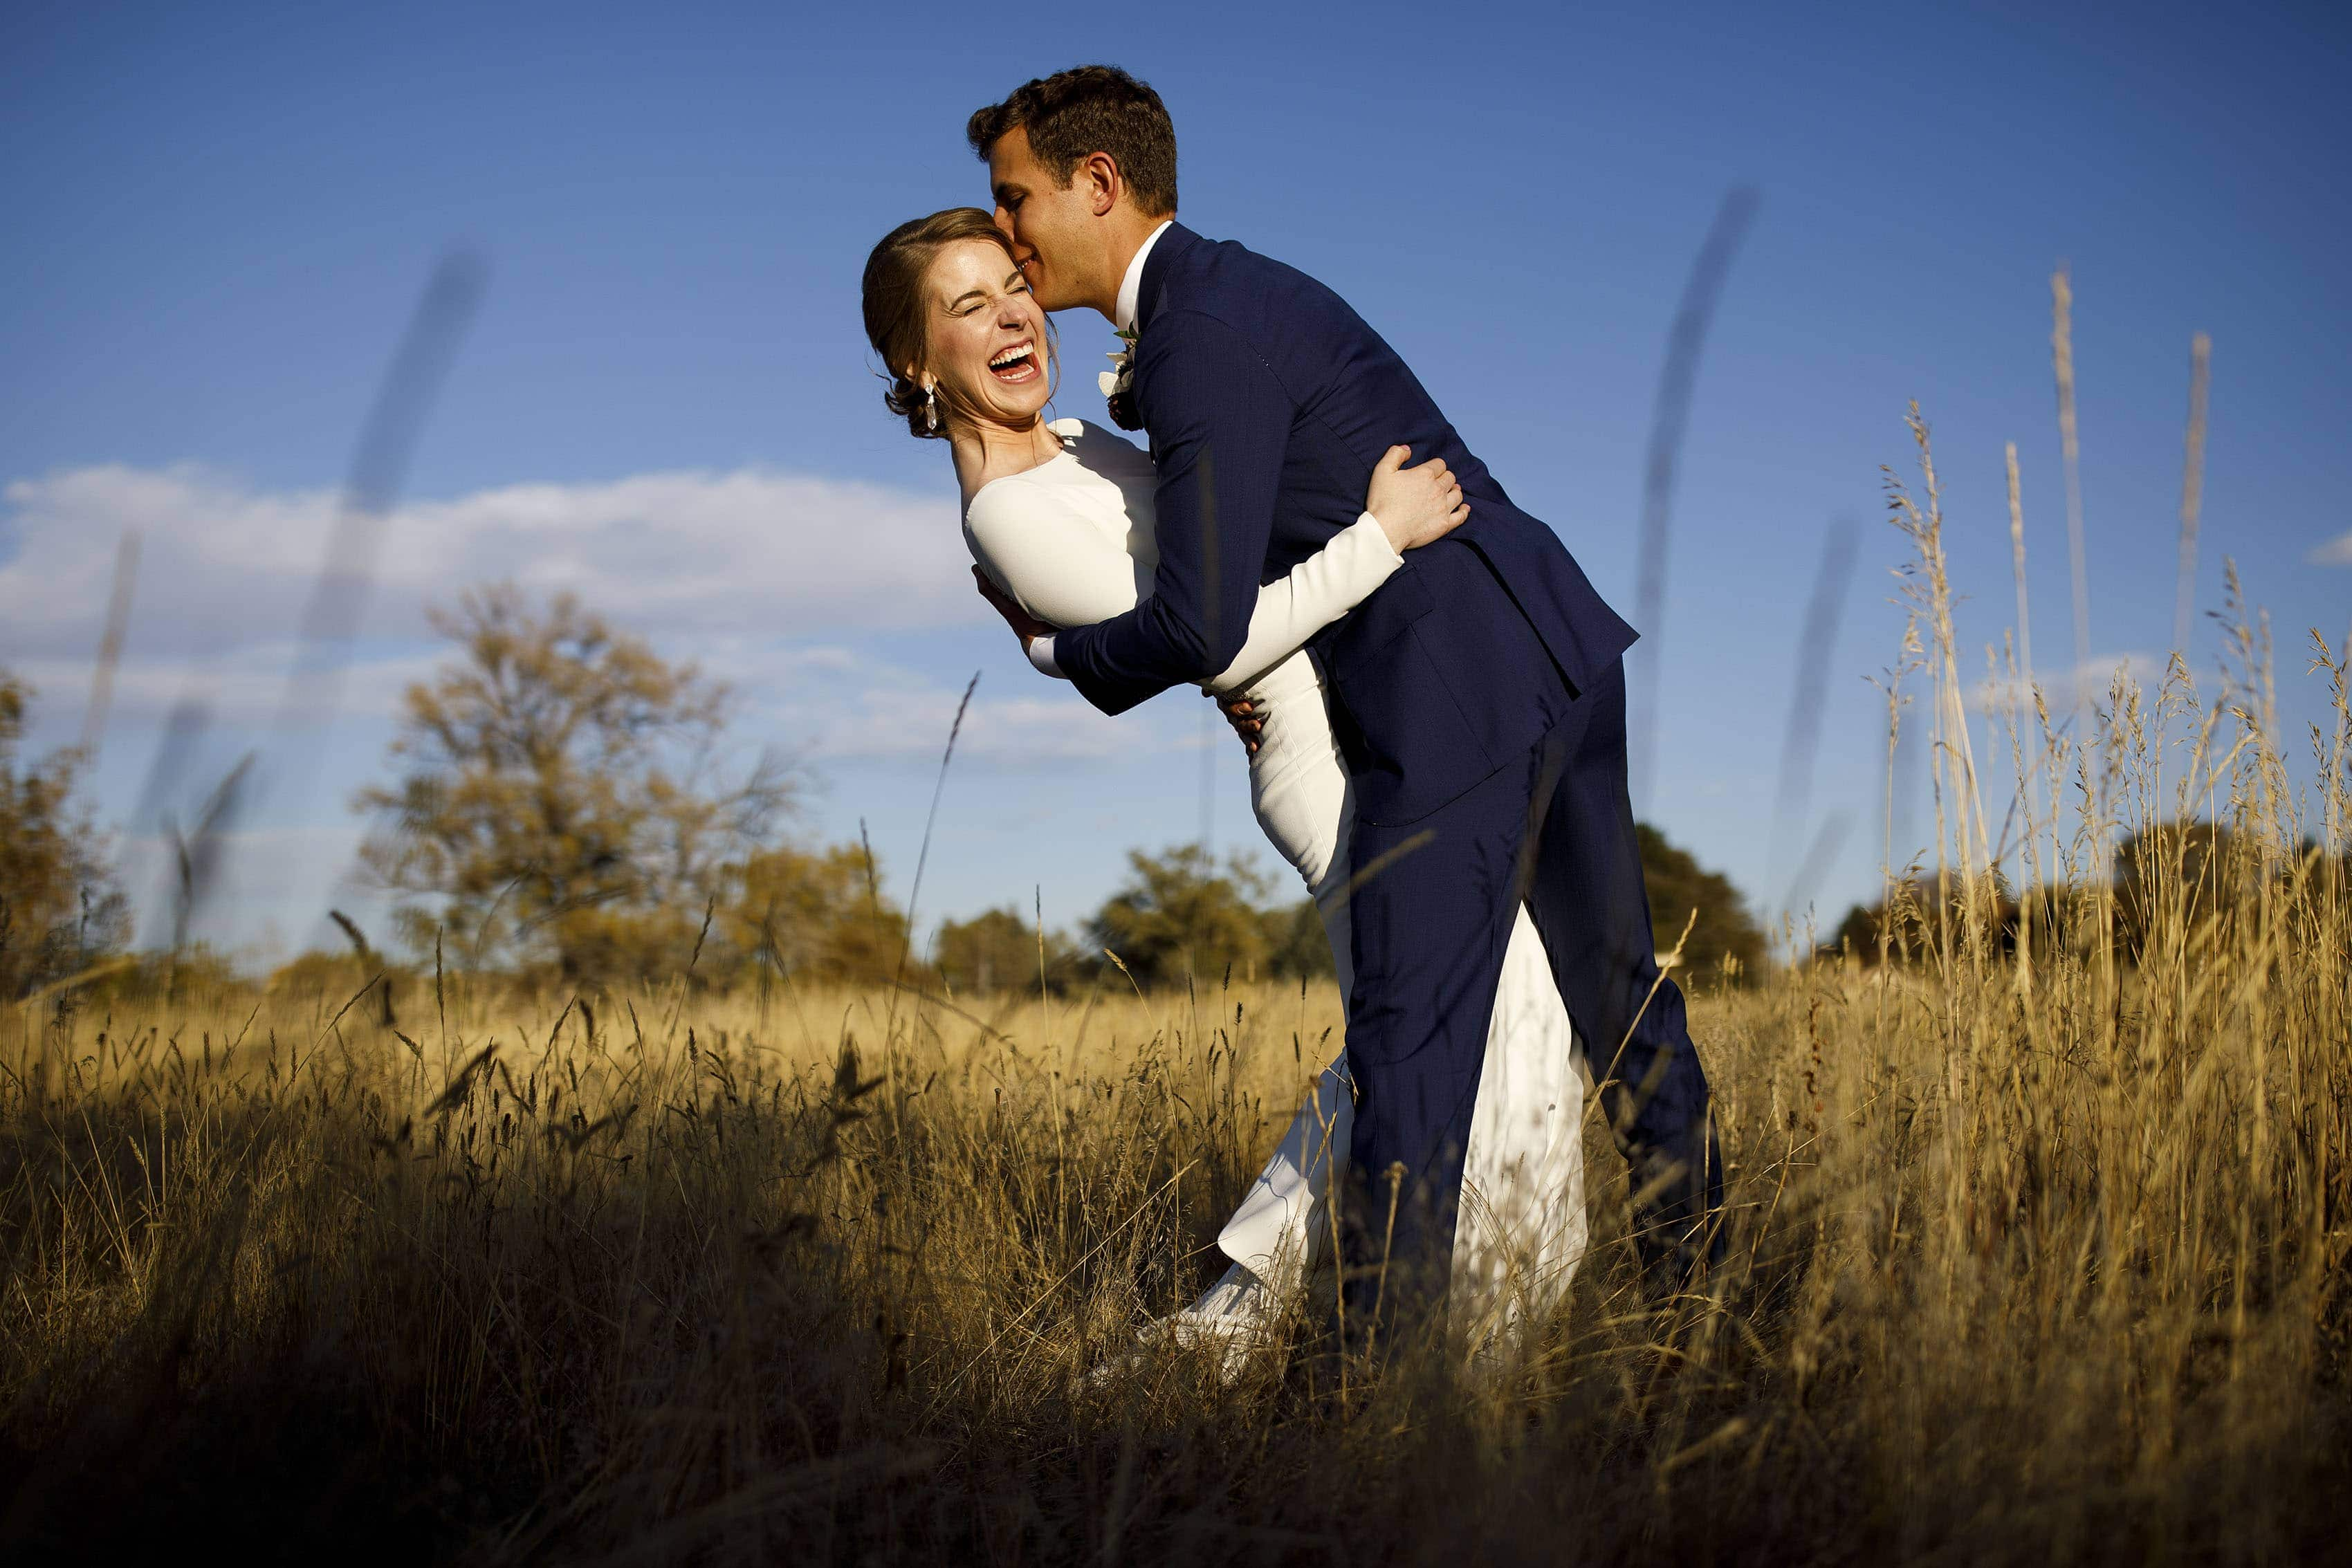 Mike kisses Jessica as she laughs while in a field at The Vista at Applewood Golf Course